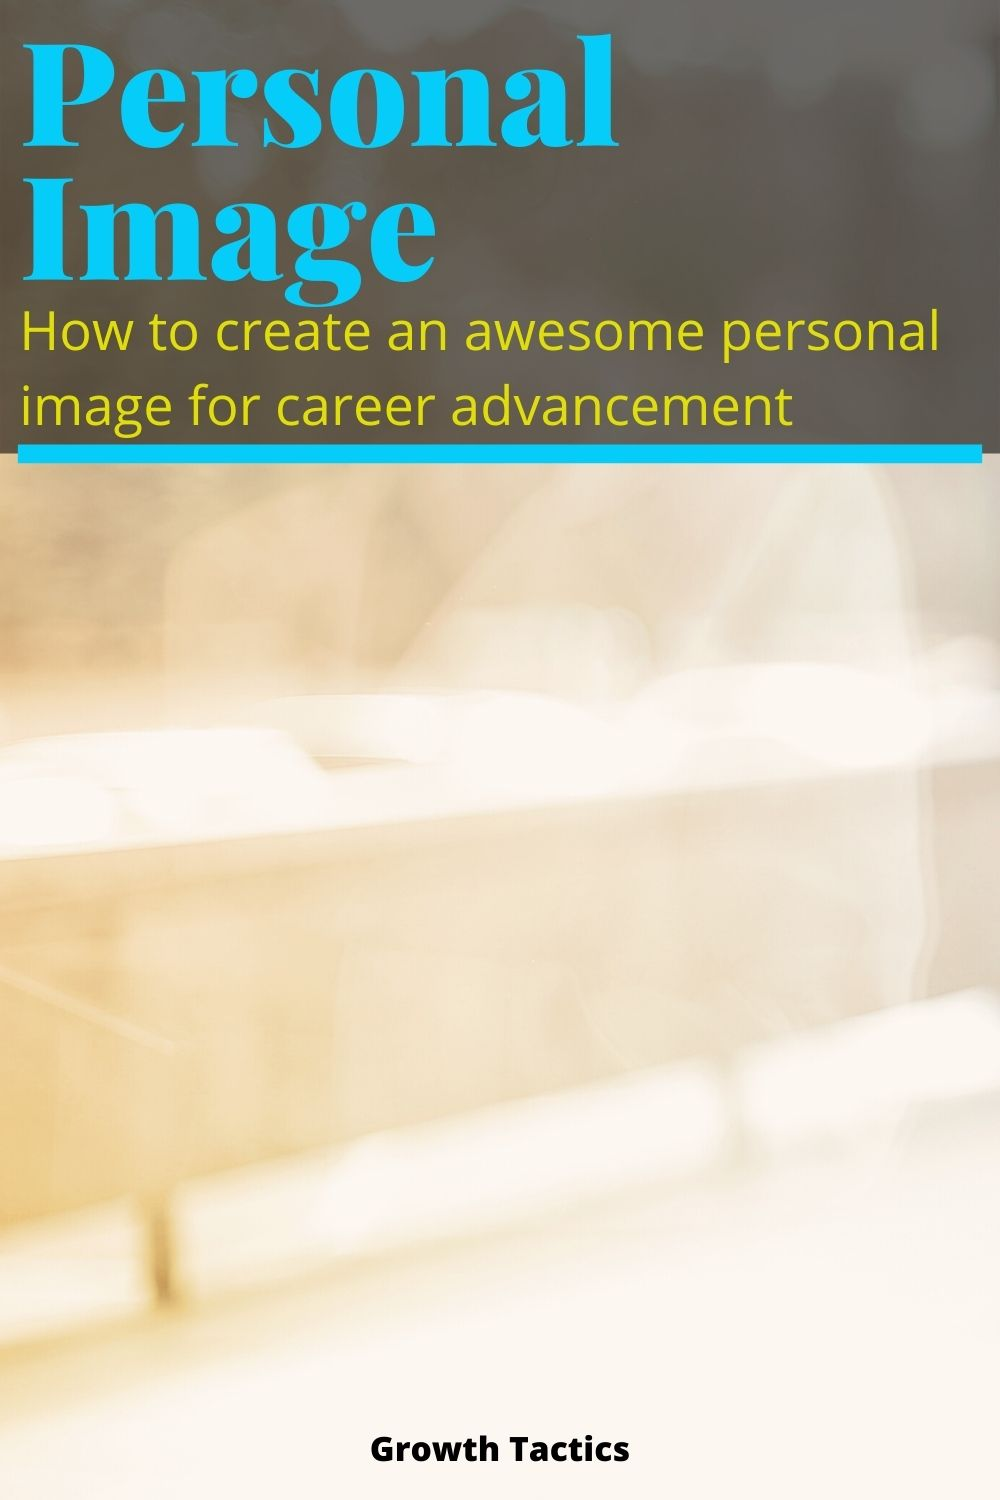 Personal Branding: 11 Tips For Creating An Epic Professional Image